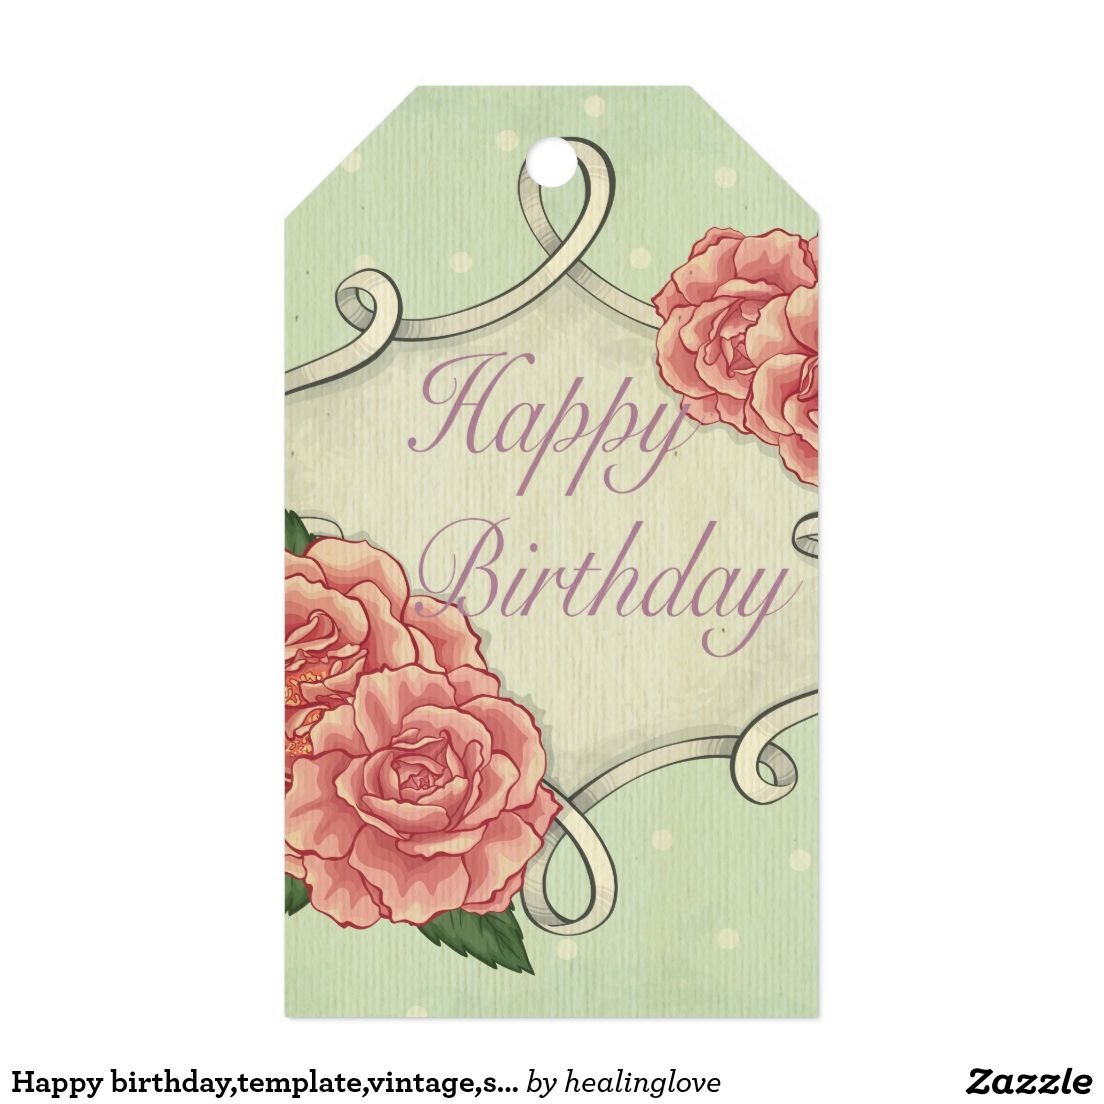 Happy birthday,template,vintage,shabby chic,roses gift tags ...